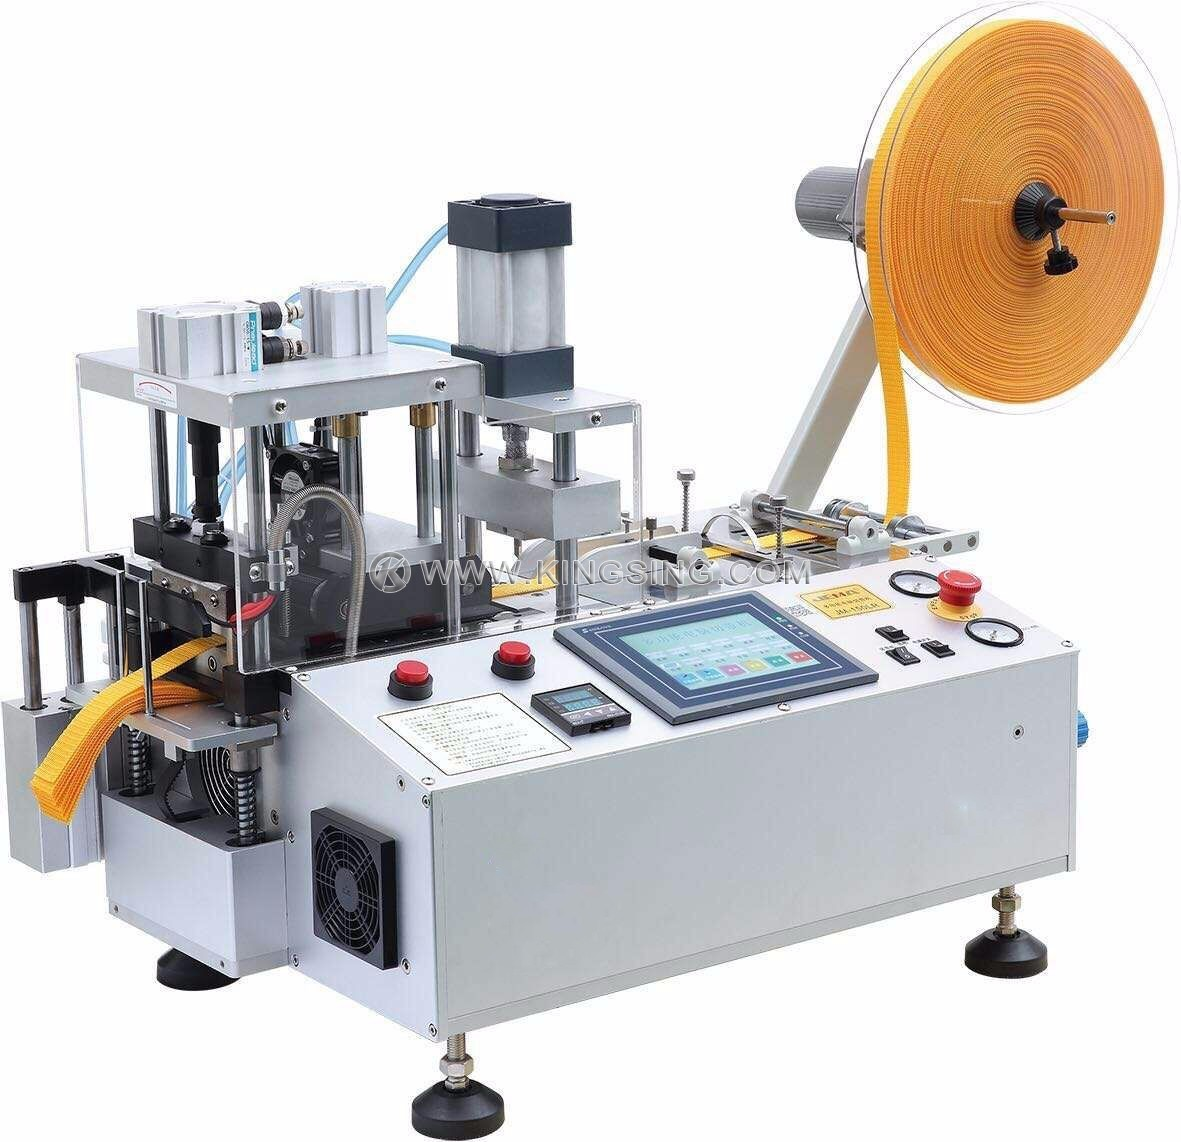 Multi-function Tape Cutting and Punching Machine